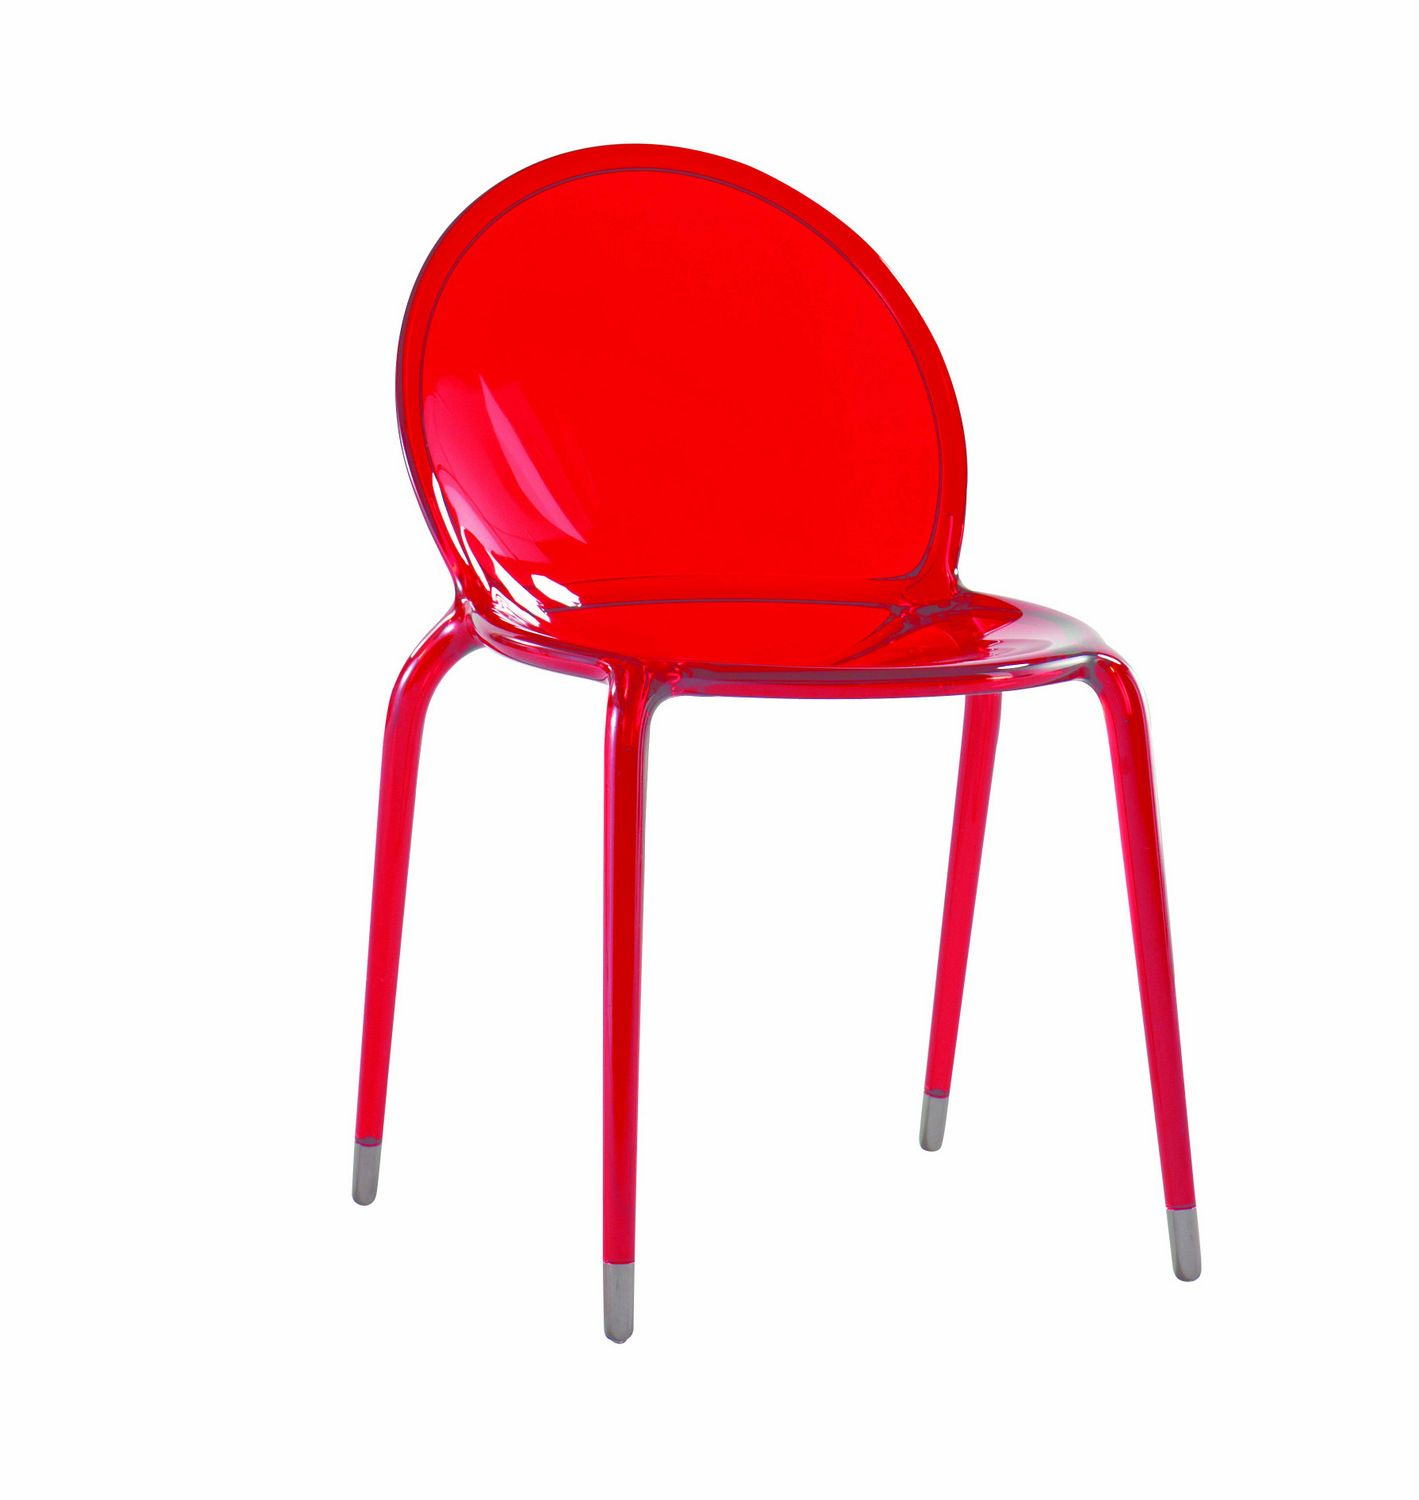 LOOP Chair | Roche Bobois